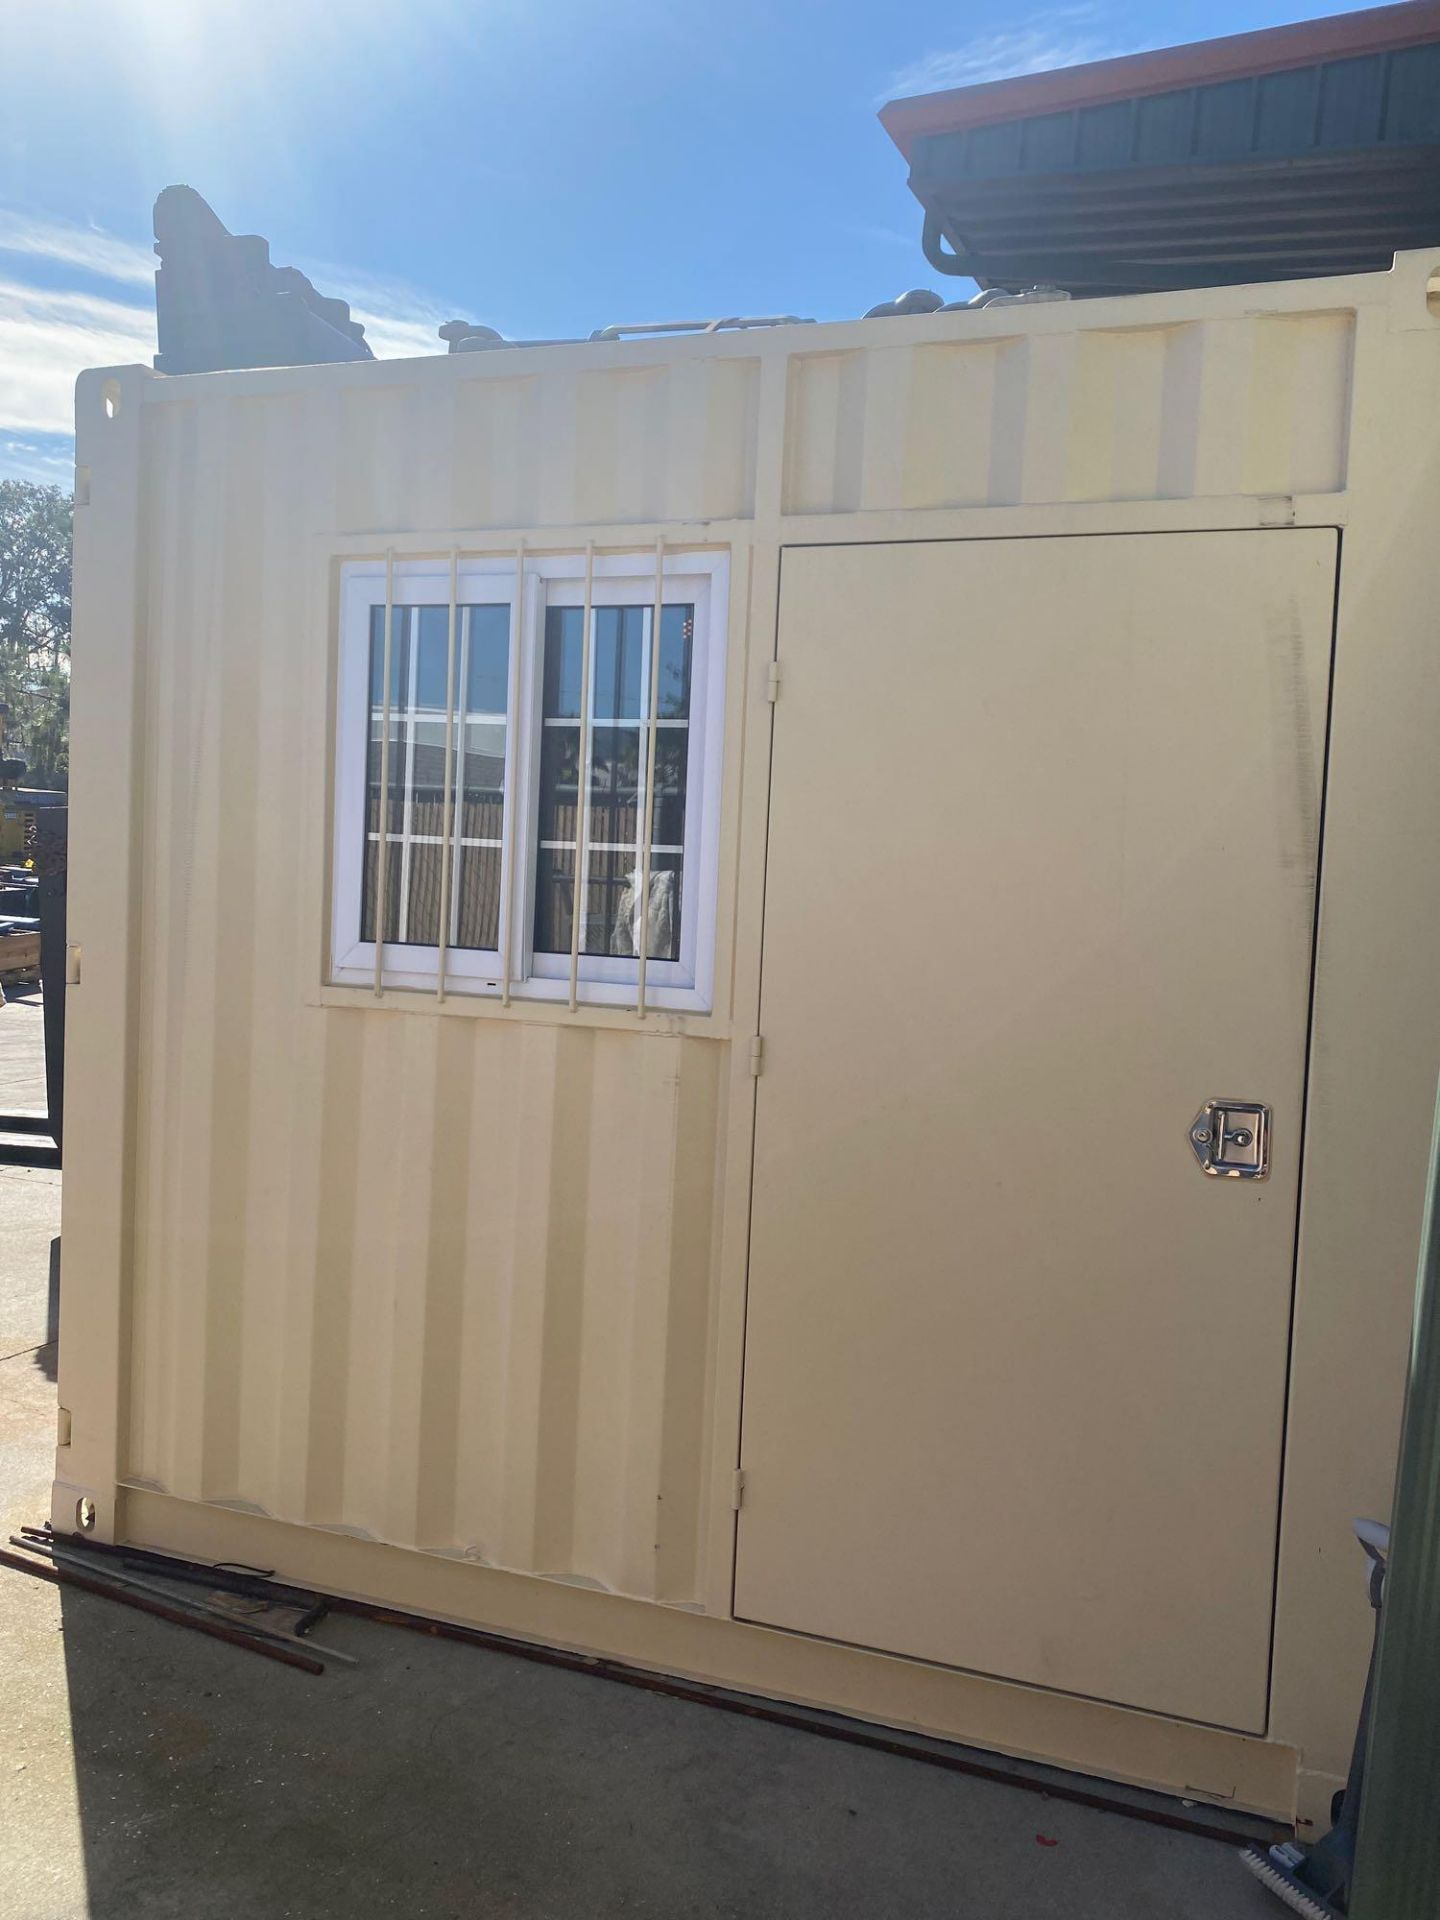 UNUSED 2020 SHIPPING/OFFICE CONTAINER WITH SIDE DOOR, FORK POCKETS, WINDOW - Image 3 of 5